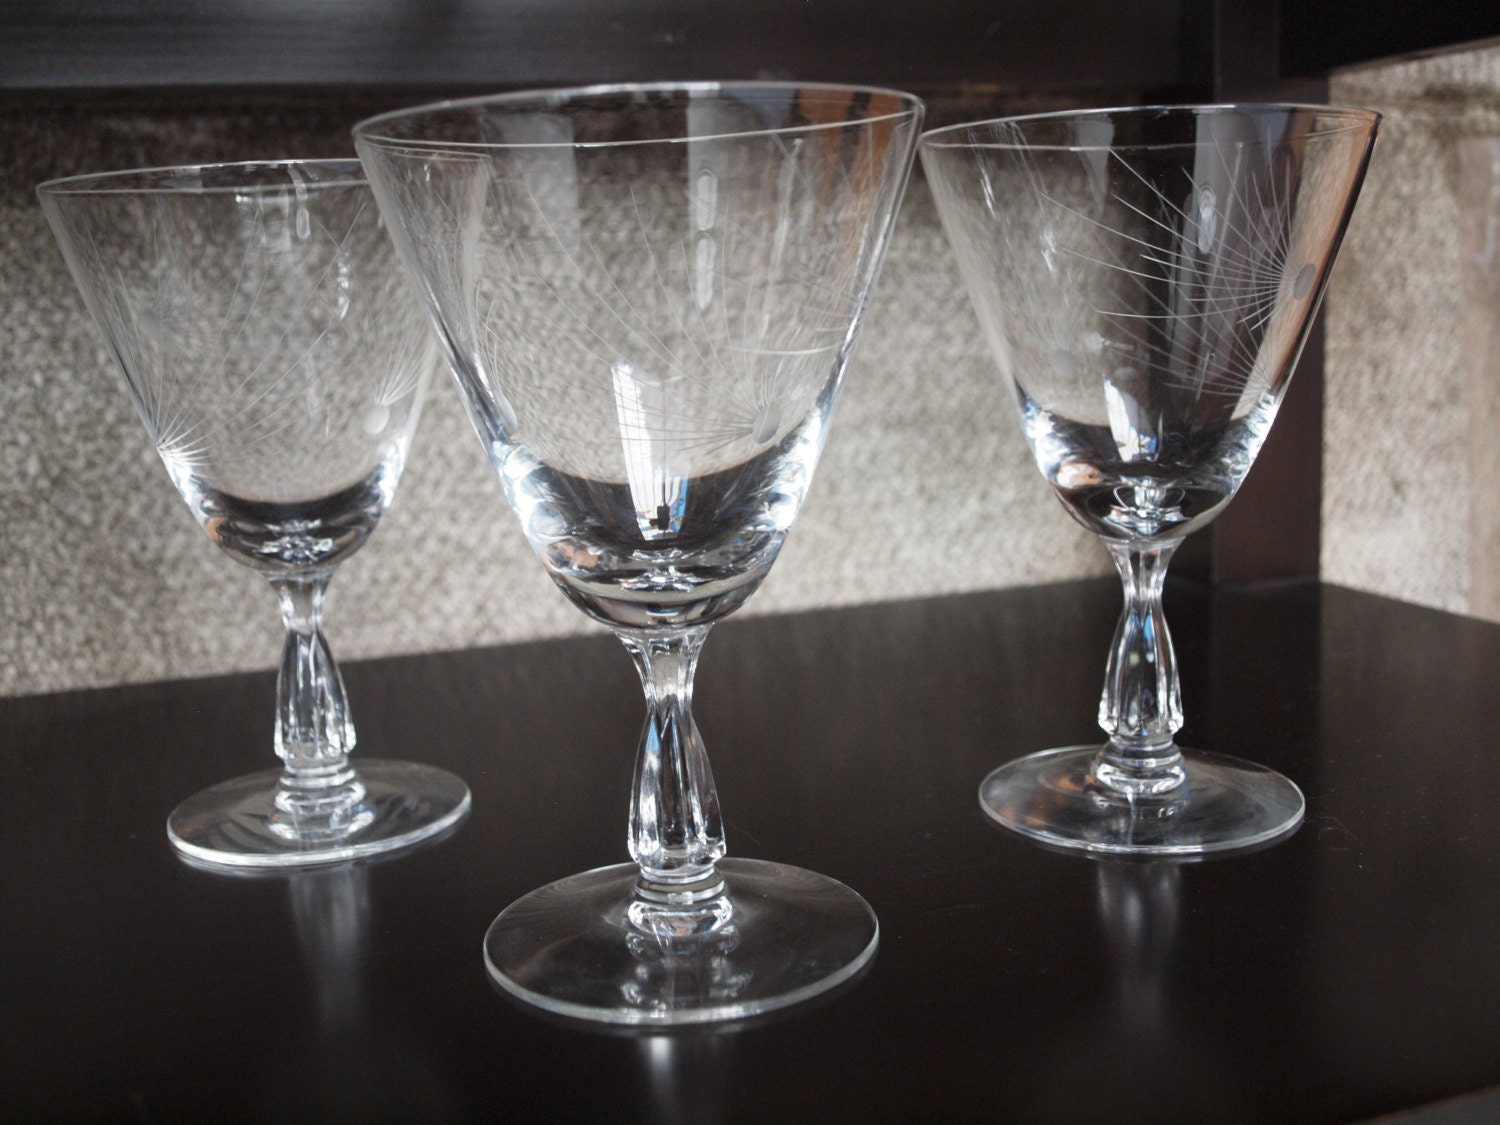 Set of 3 atomic era starburst water goblet glasses fostoria - Starburst glassware ...